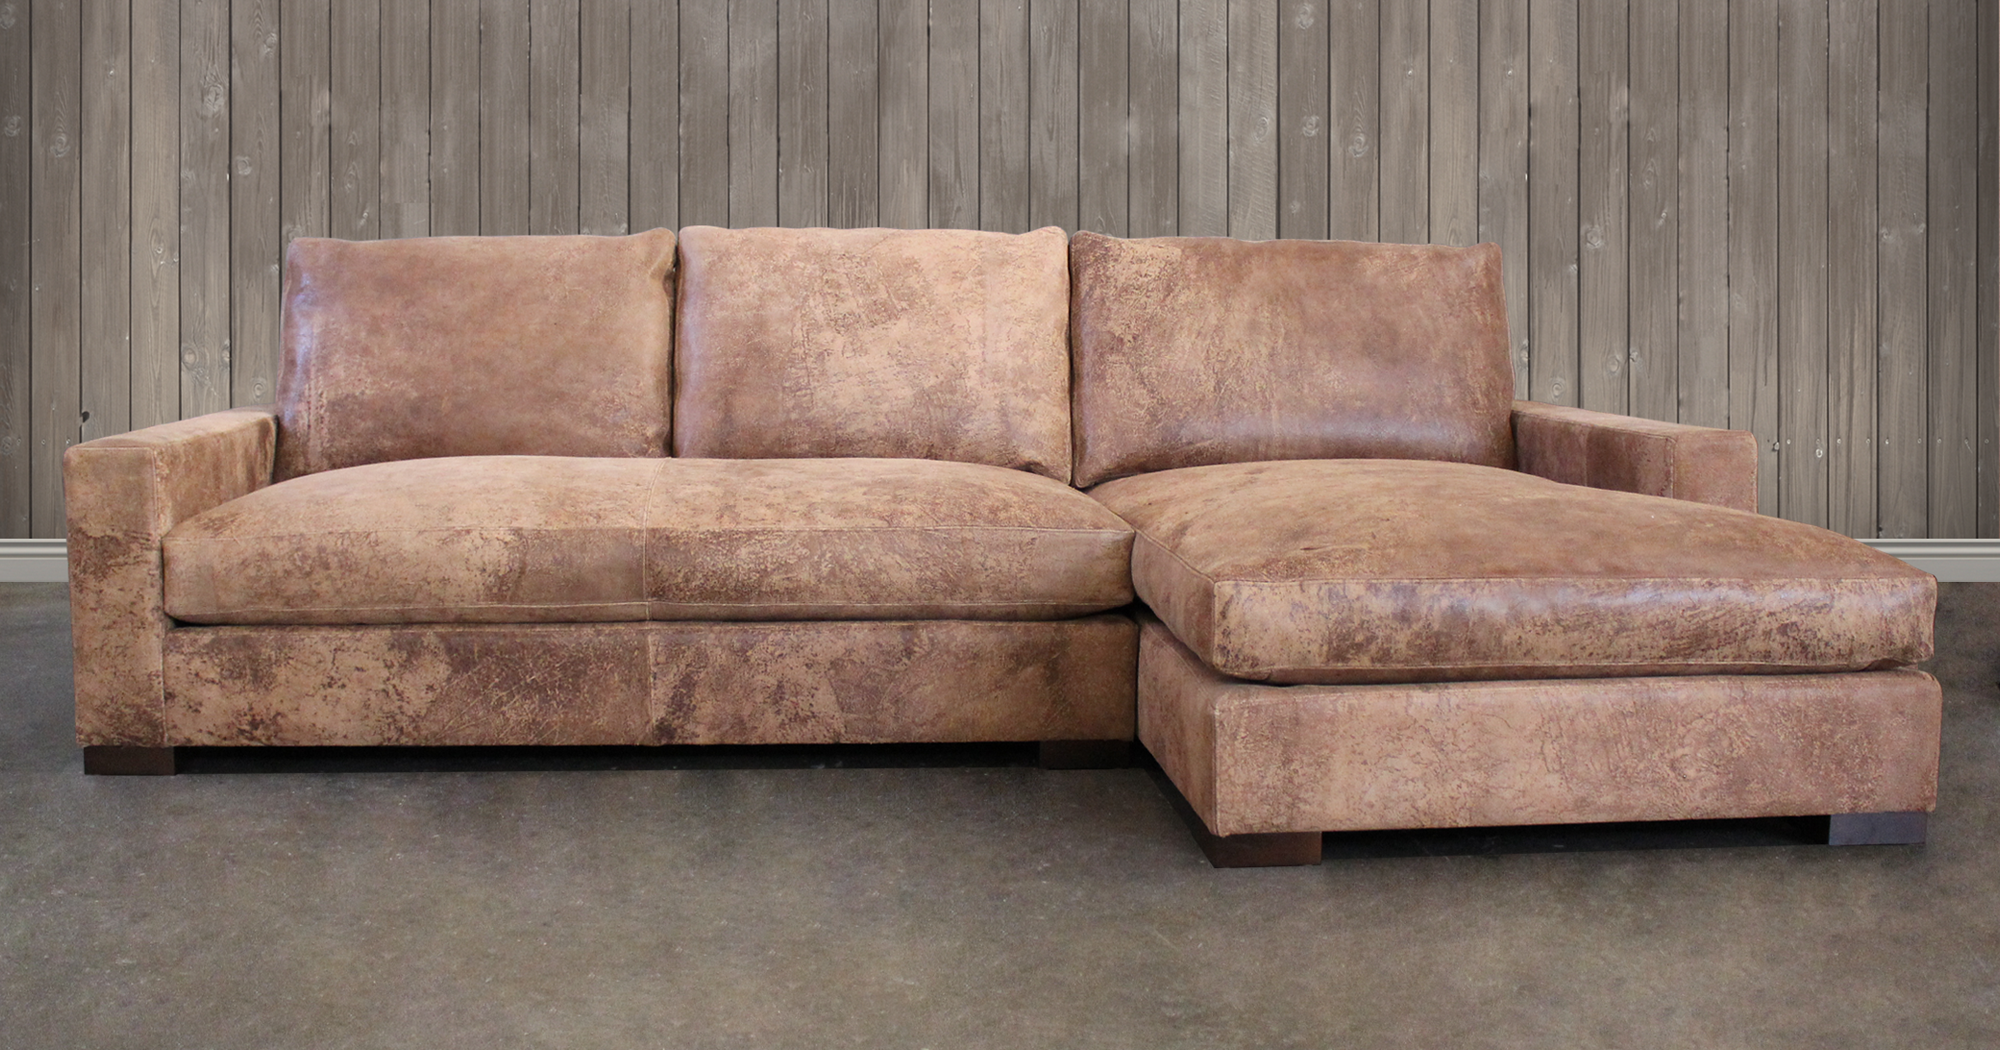 Braxton Sofa Chaise Sectional in Italian Destroyed Leather